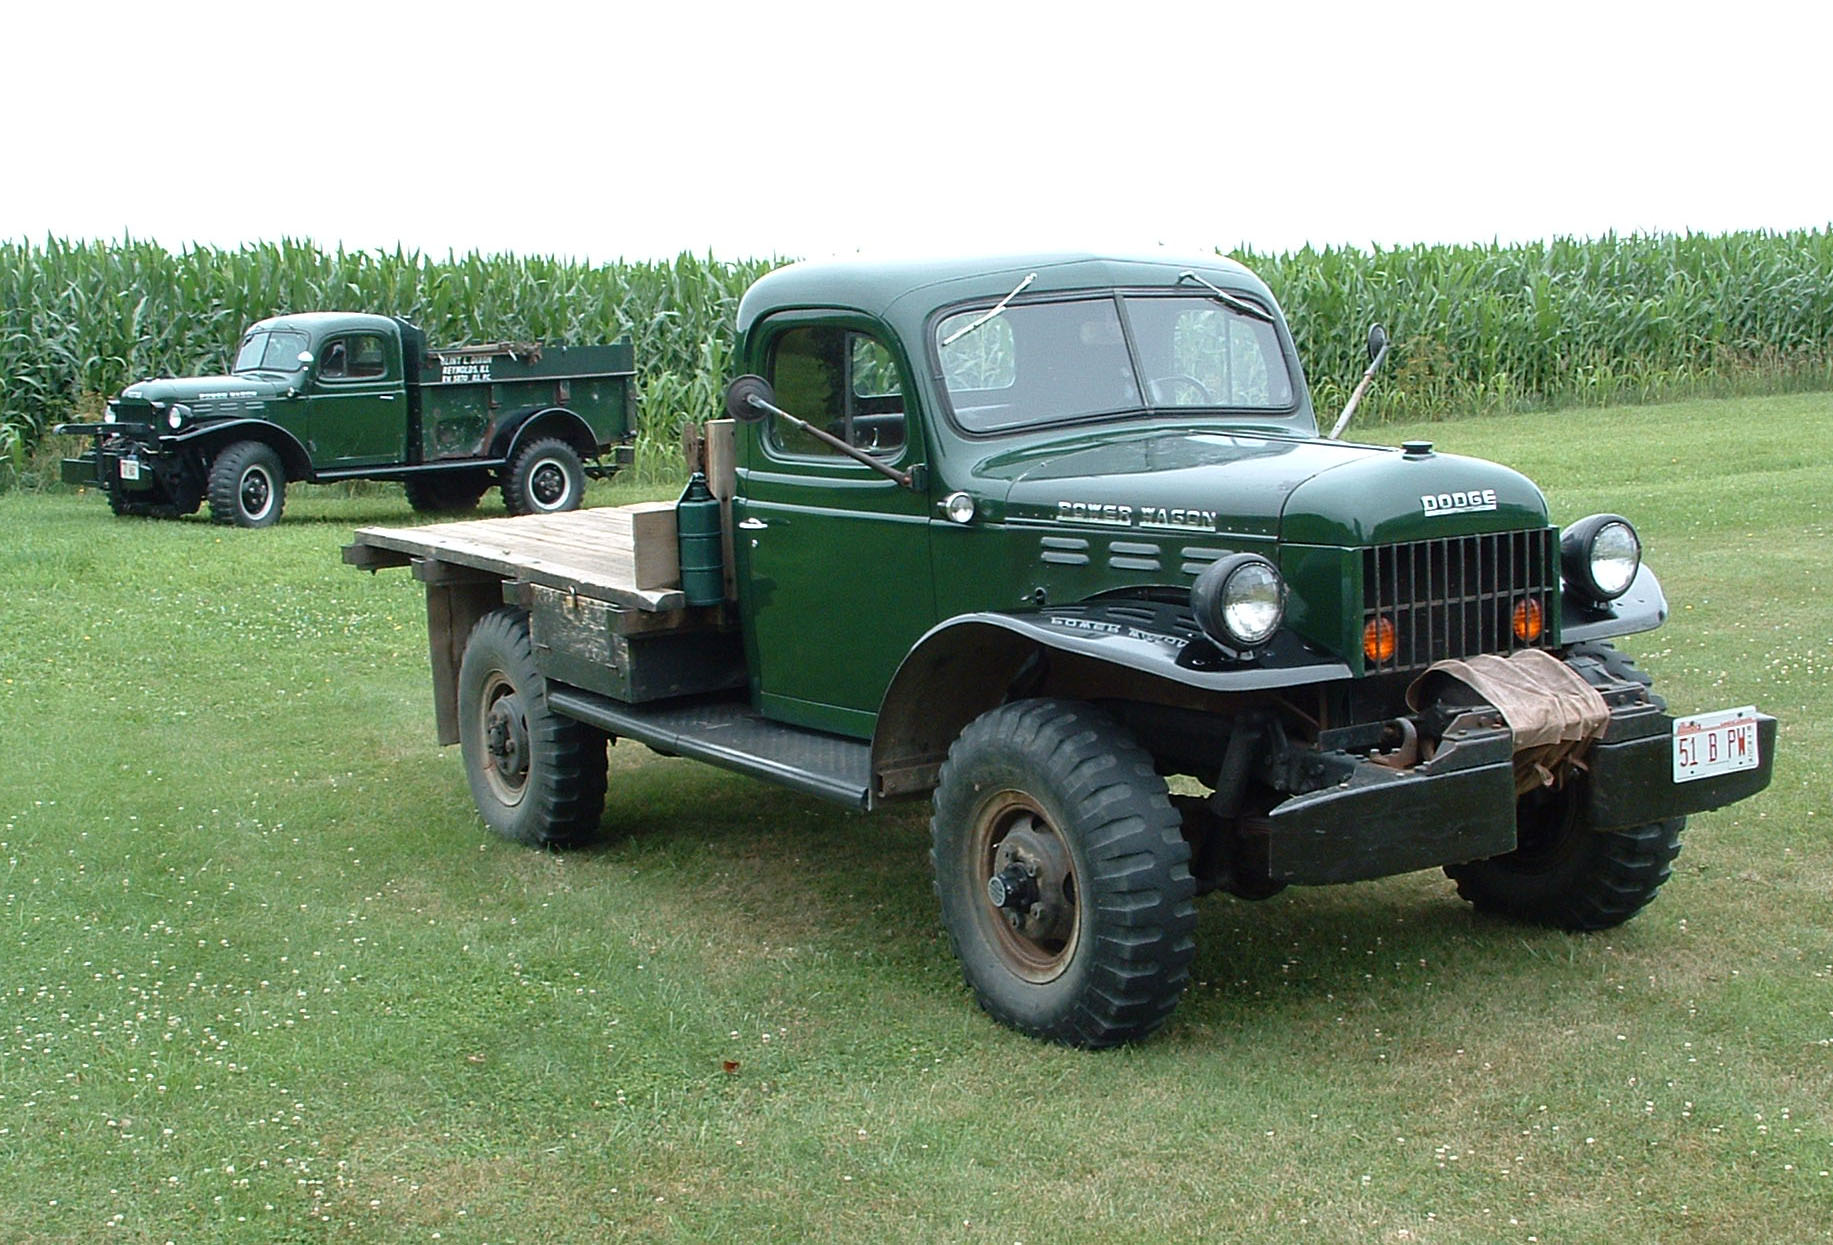 1940 Dodge Power Wagon Hot Rod Show Car likewise 753807805198106626 further  additionally ClintD 51 47 further Dodge Meadowbrook. on 1951 power wagon